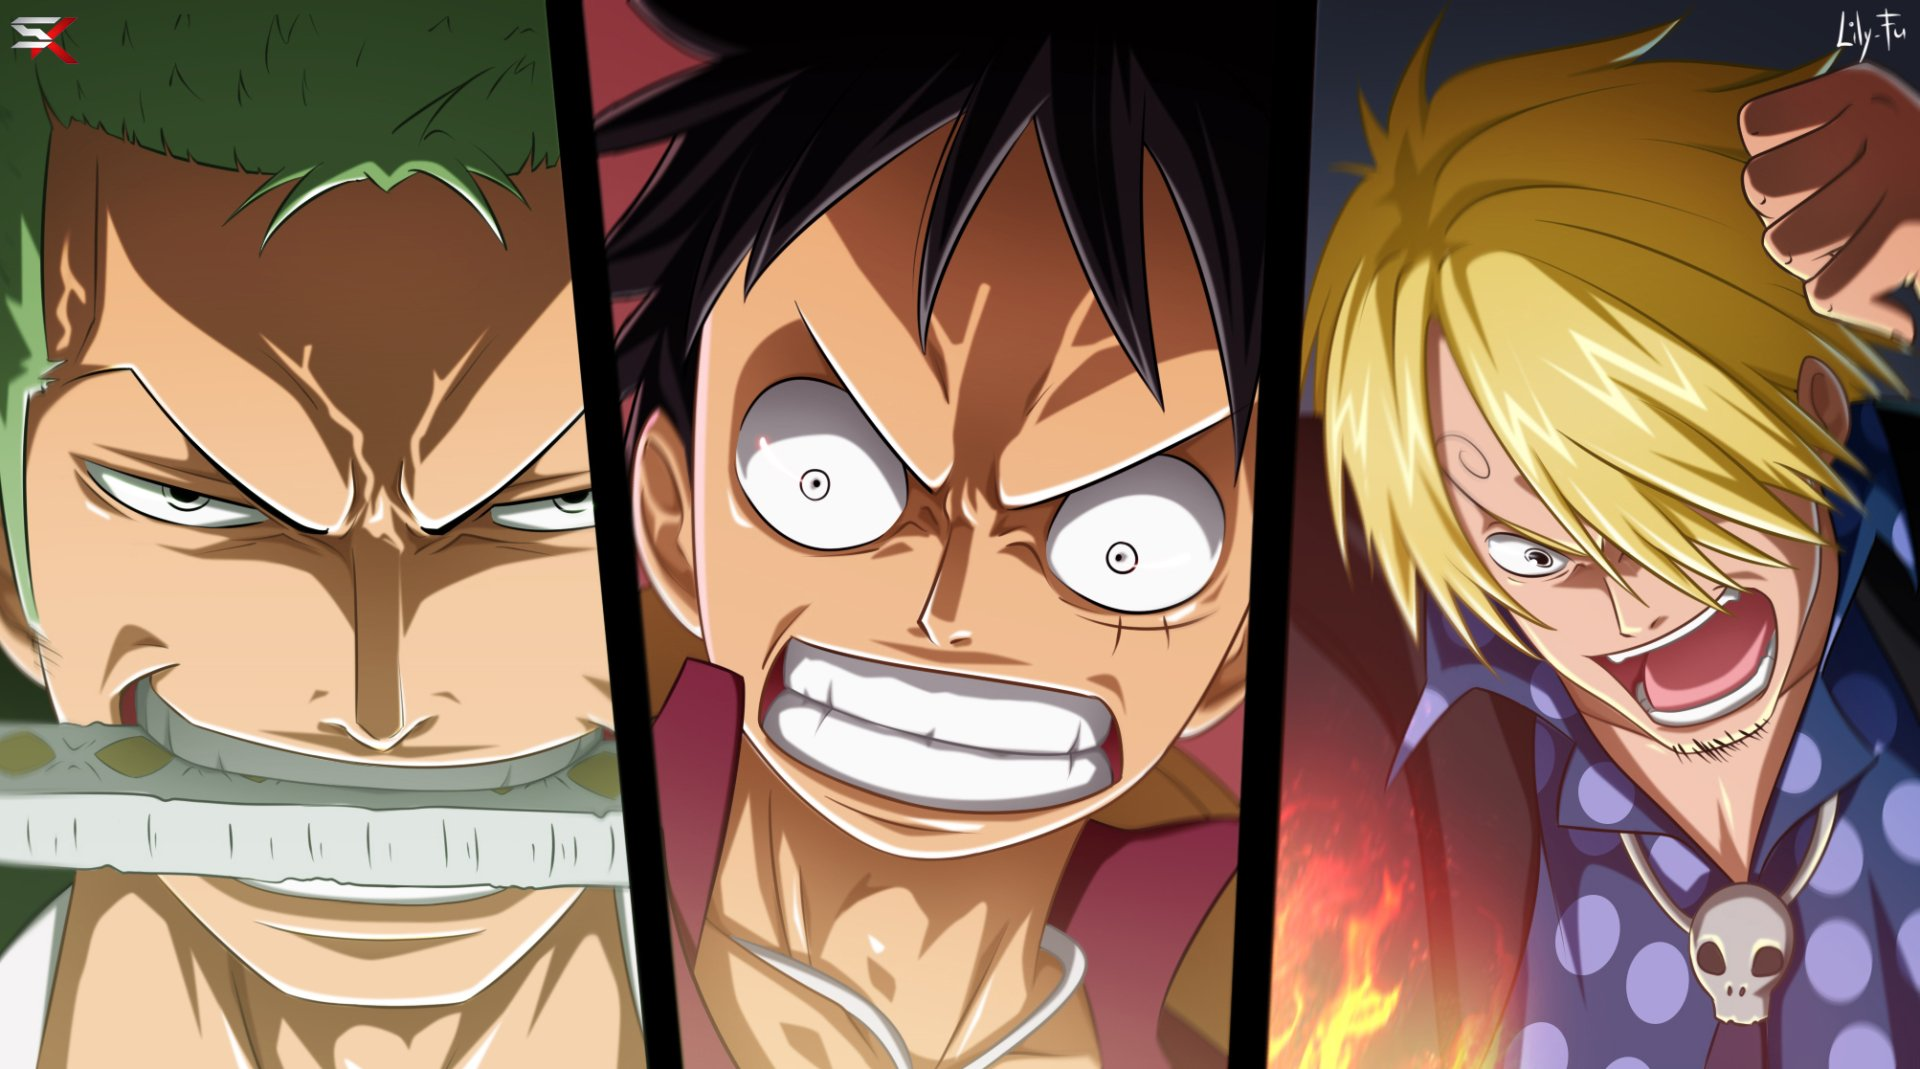 One Piece Iphone X Wallpaper Zoro Luffy And Sanji Full Hd Papel De Parede And